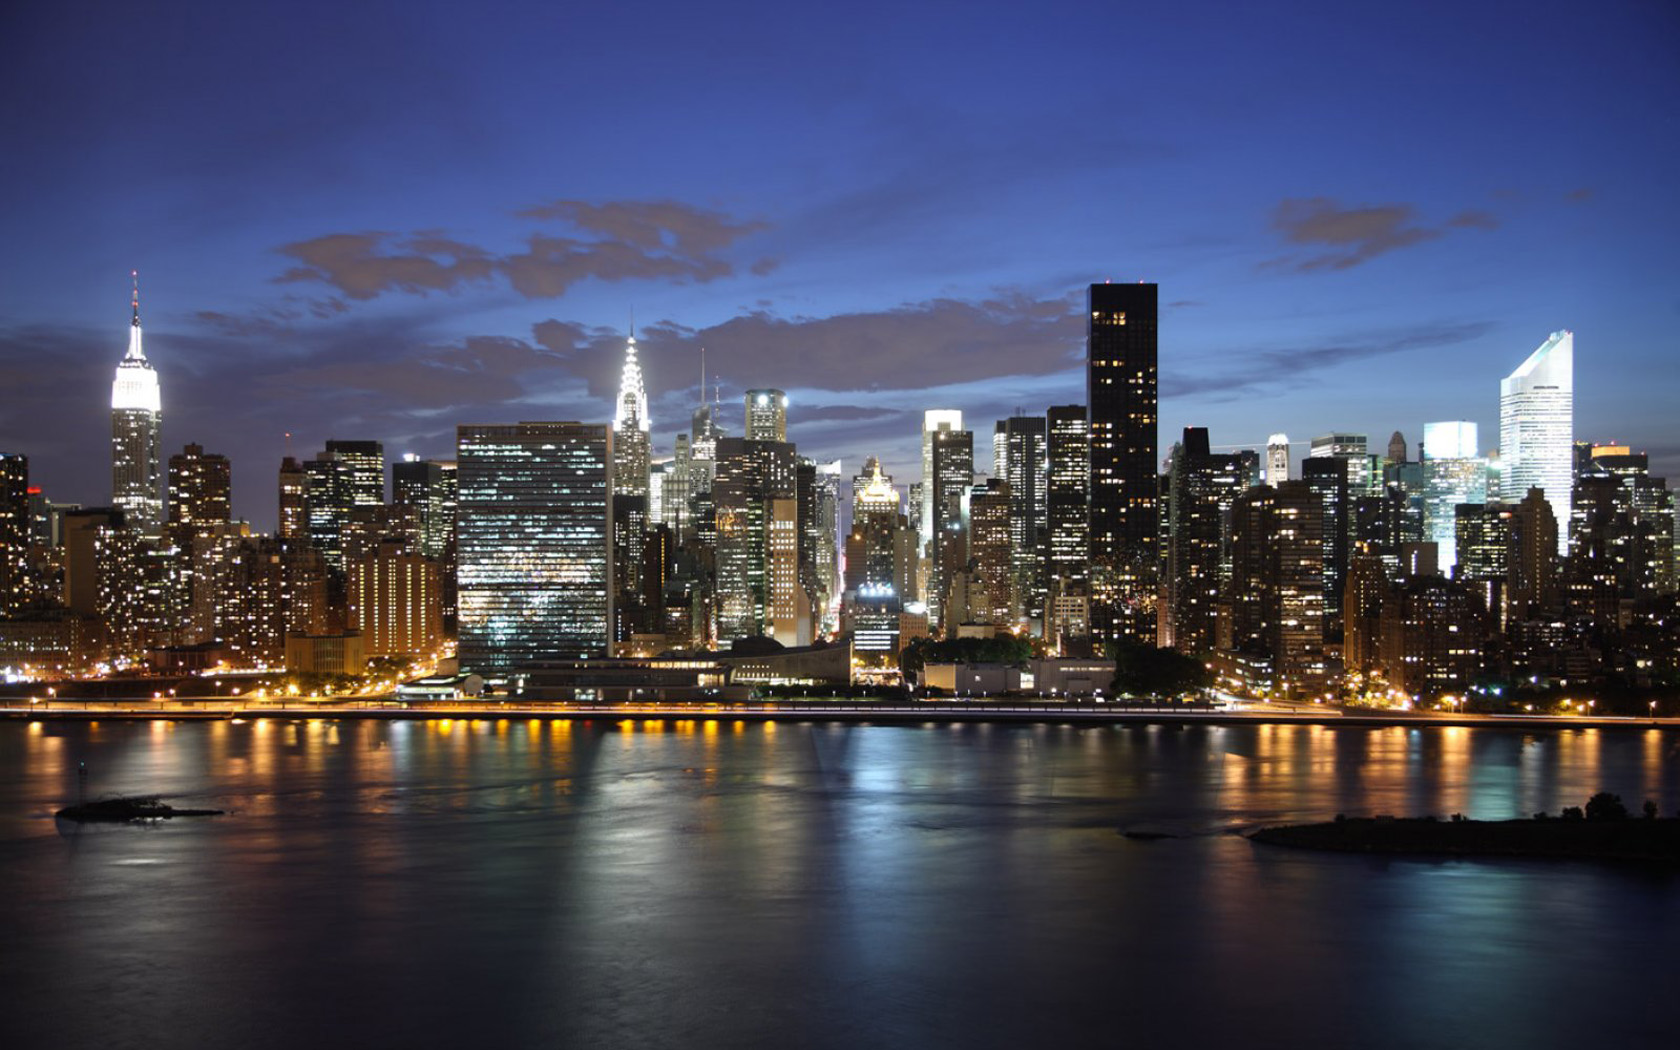 New York at Night Wallpaper wallpaper New York at Night Wallpaper hd 1680x1050